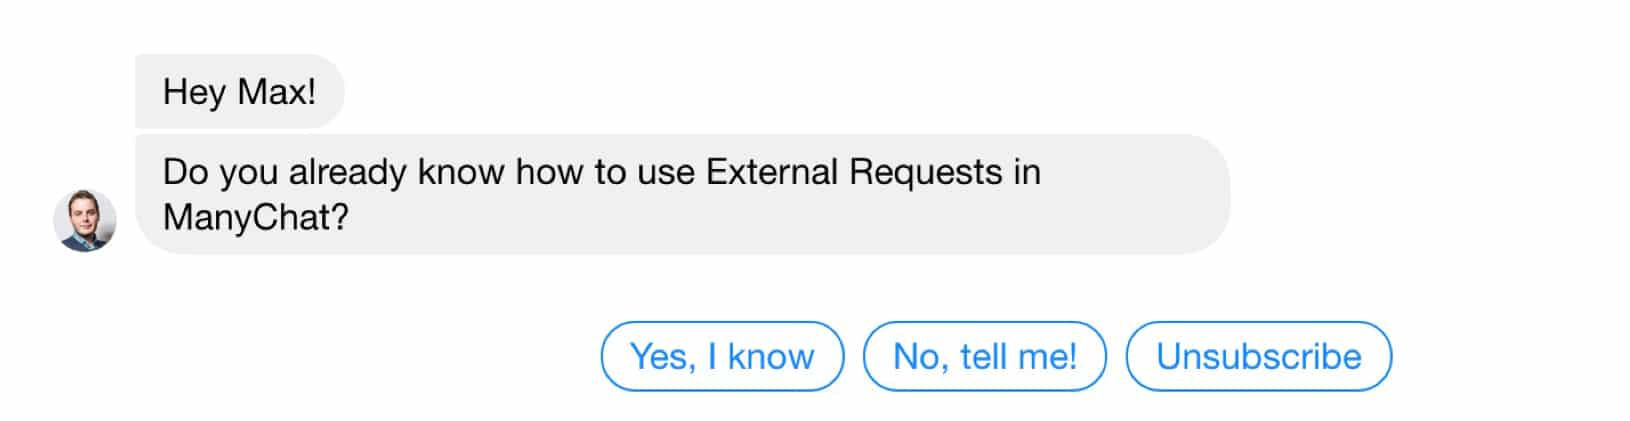 Asking if she knows what external requests are